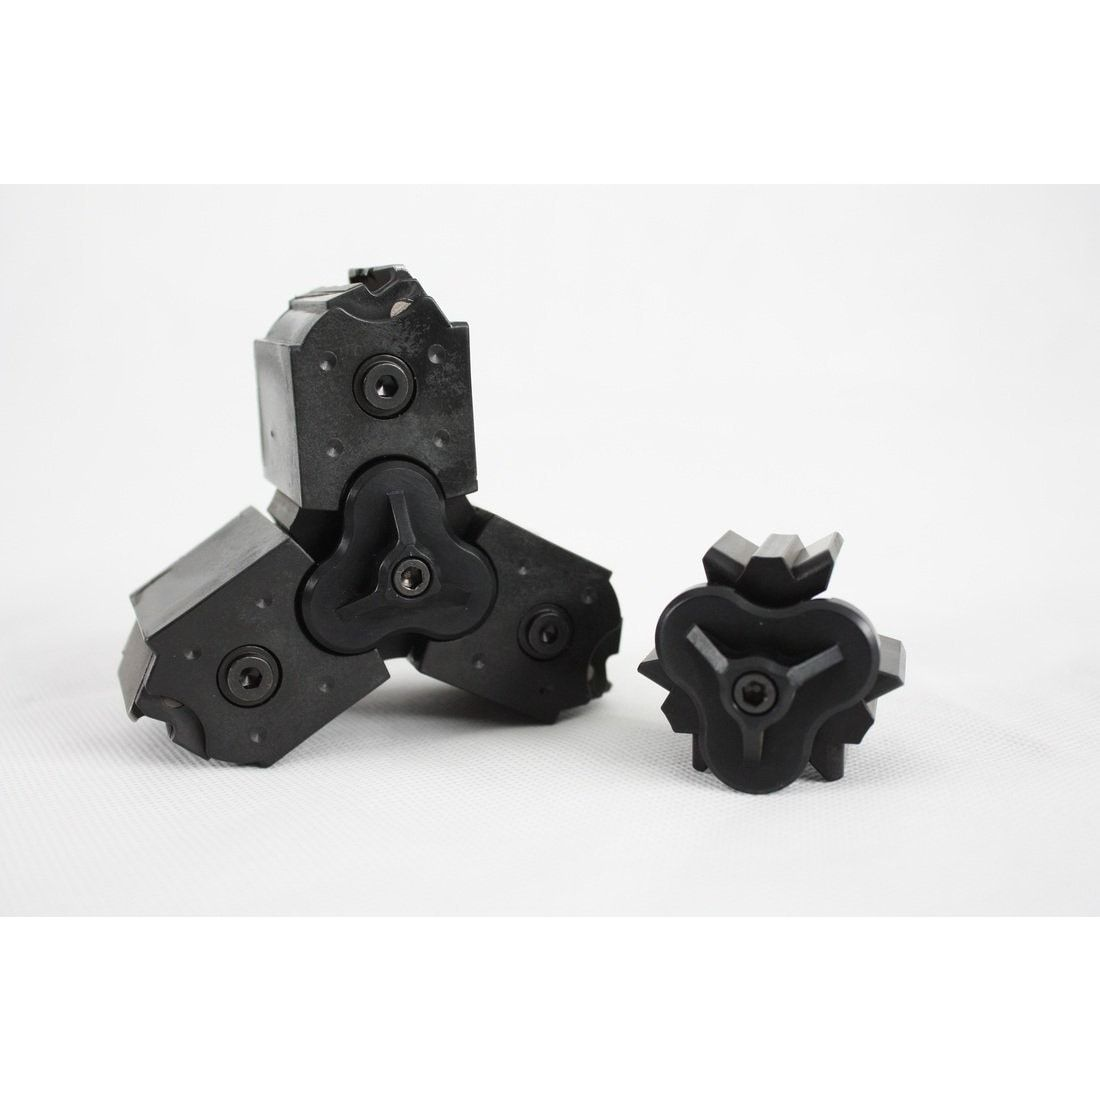 MAG-ROTOR - RUGER 10/22 MAGAZINE CLAMP